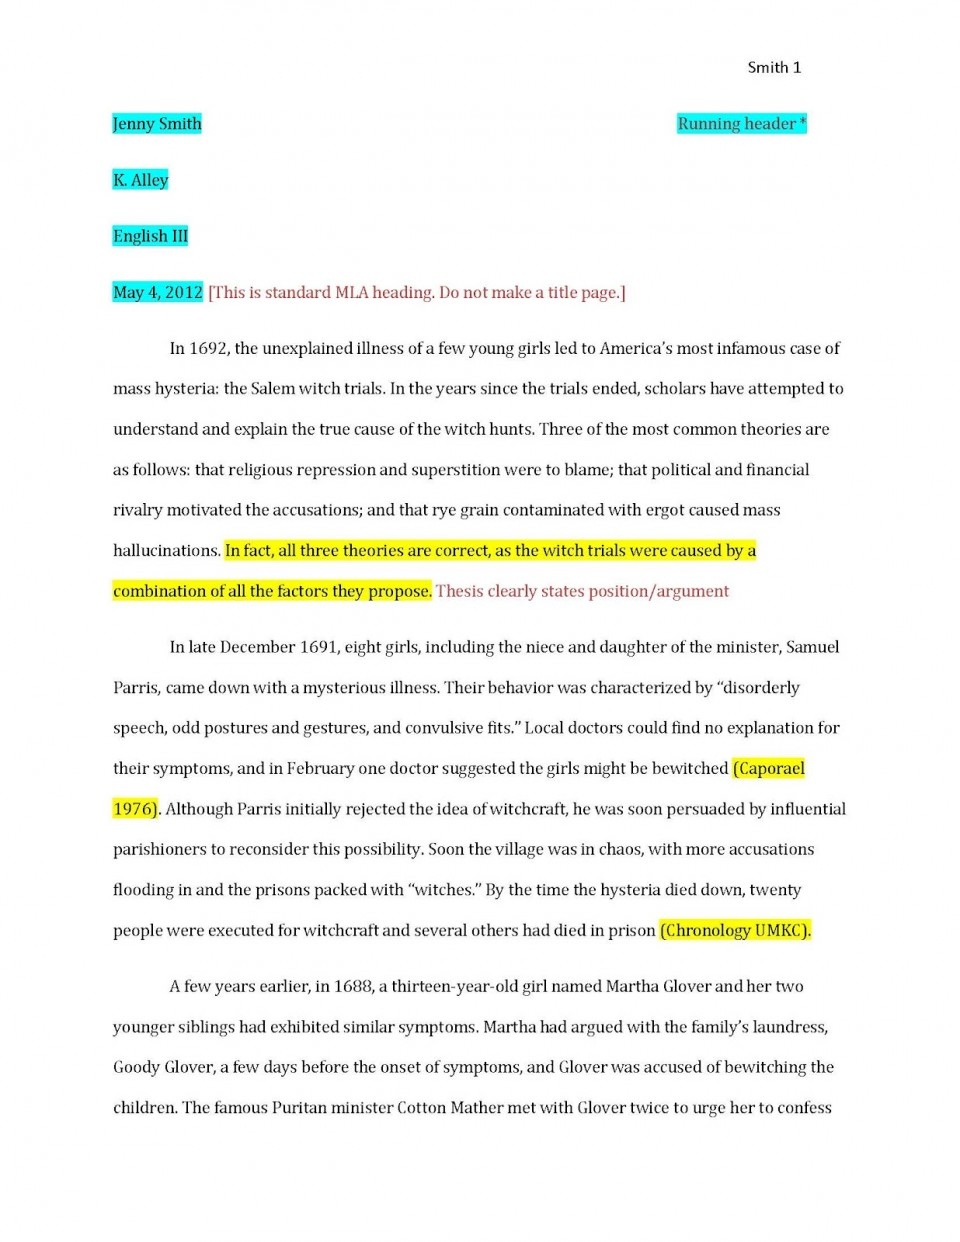 006 Examplepaper Page 1 Research Paper Citations Amazing For How To Make Bibliography Do Write 960